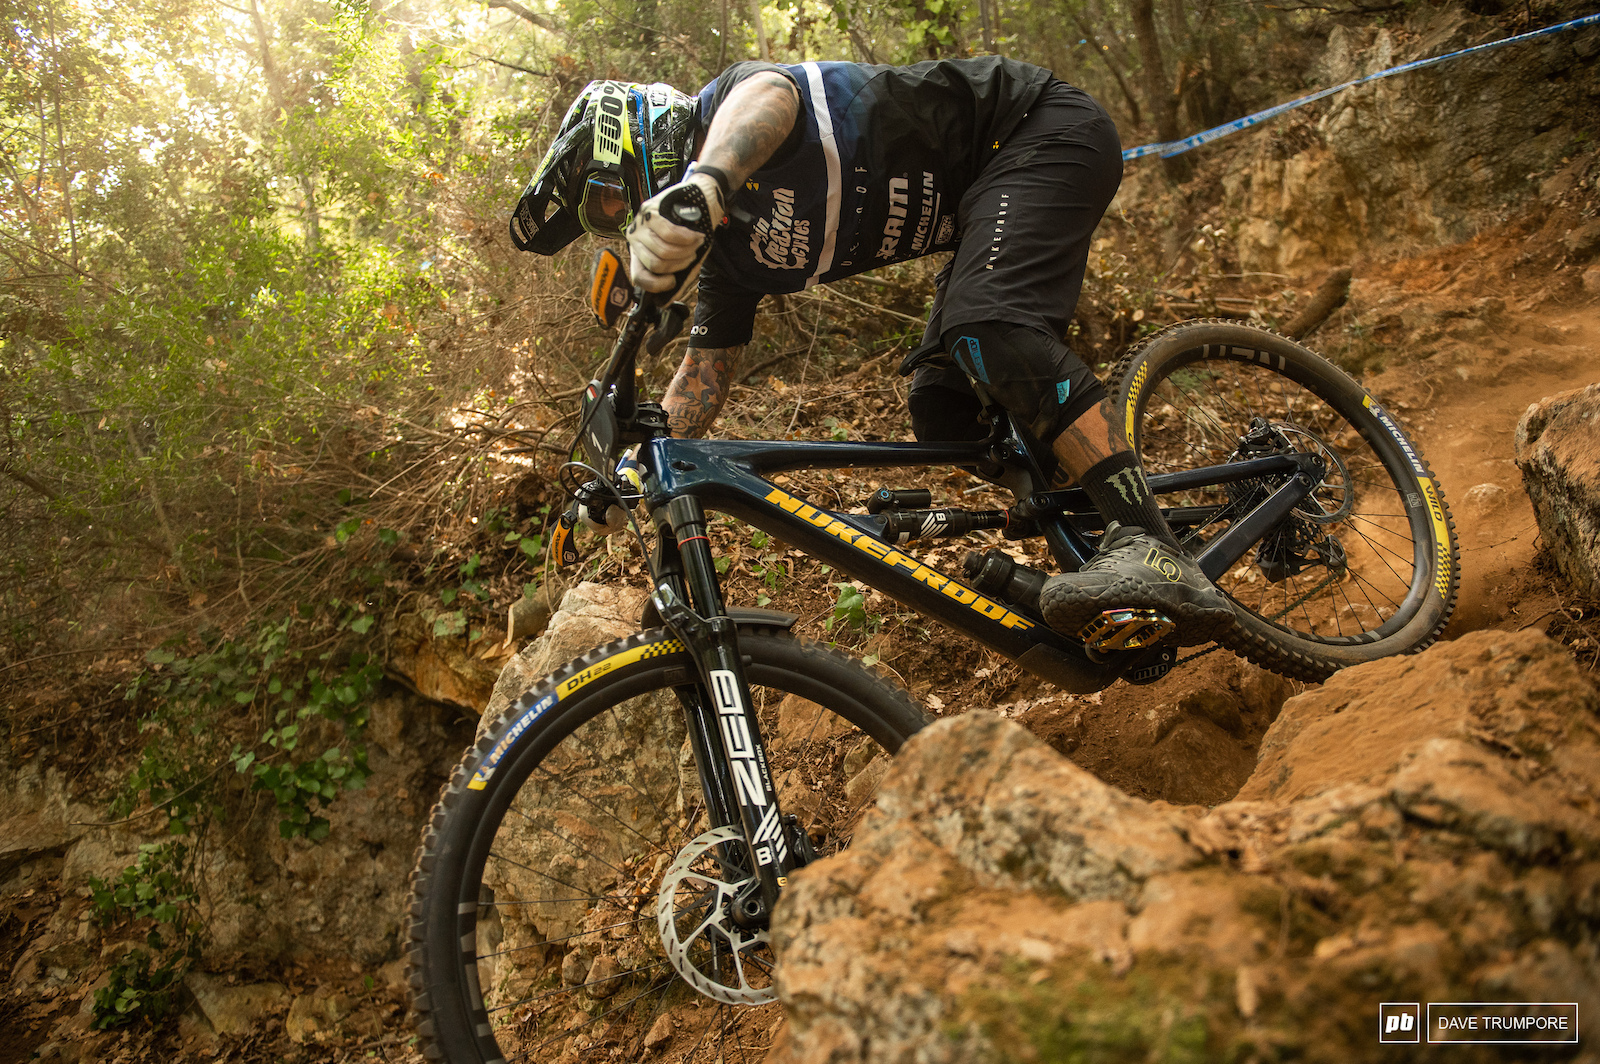 Sam Hill might not be having a great season but he still makes the hardest sections of trail looks simple